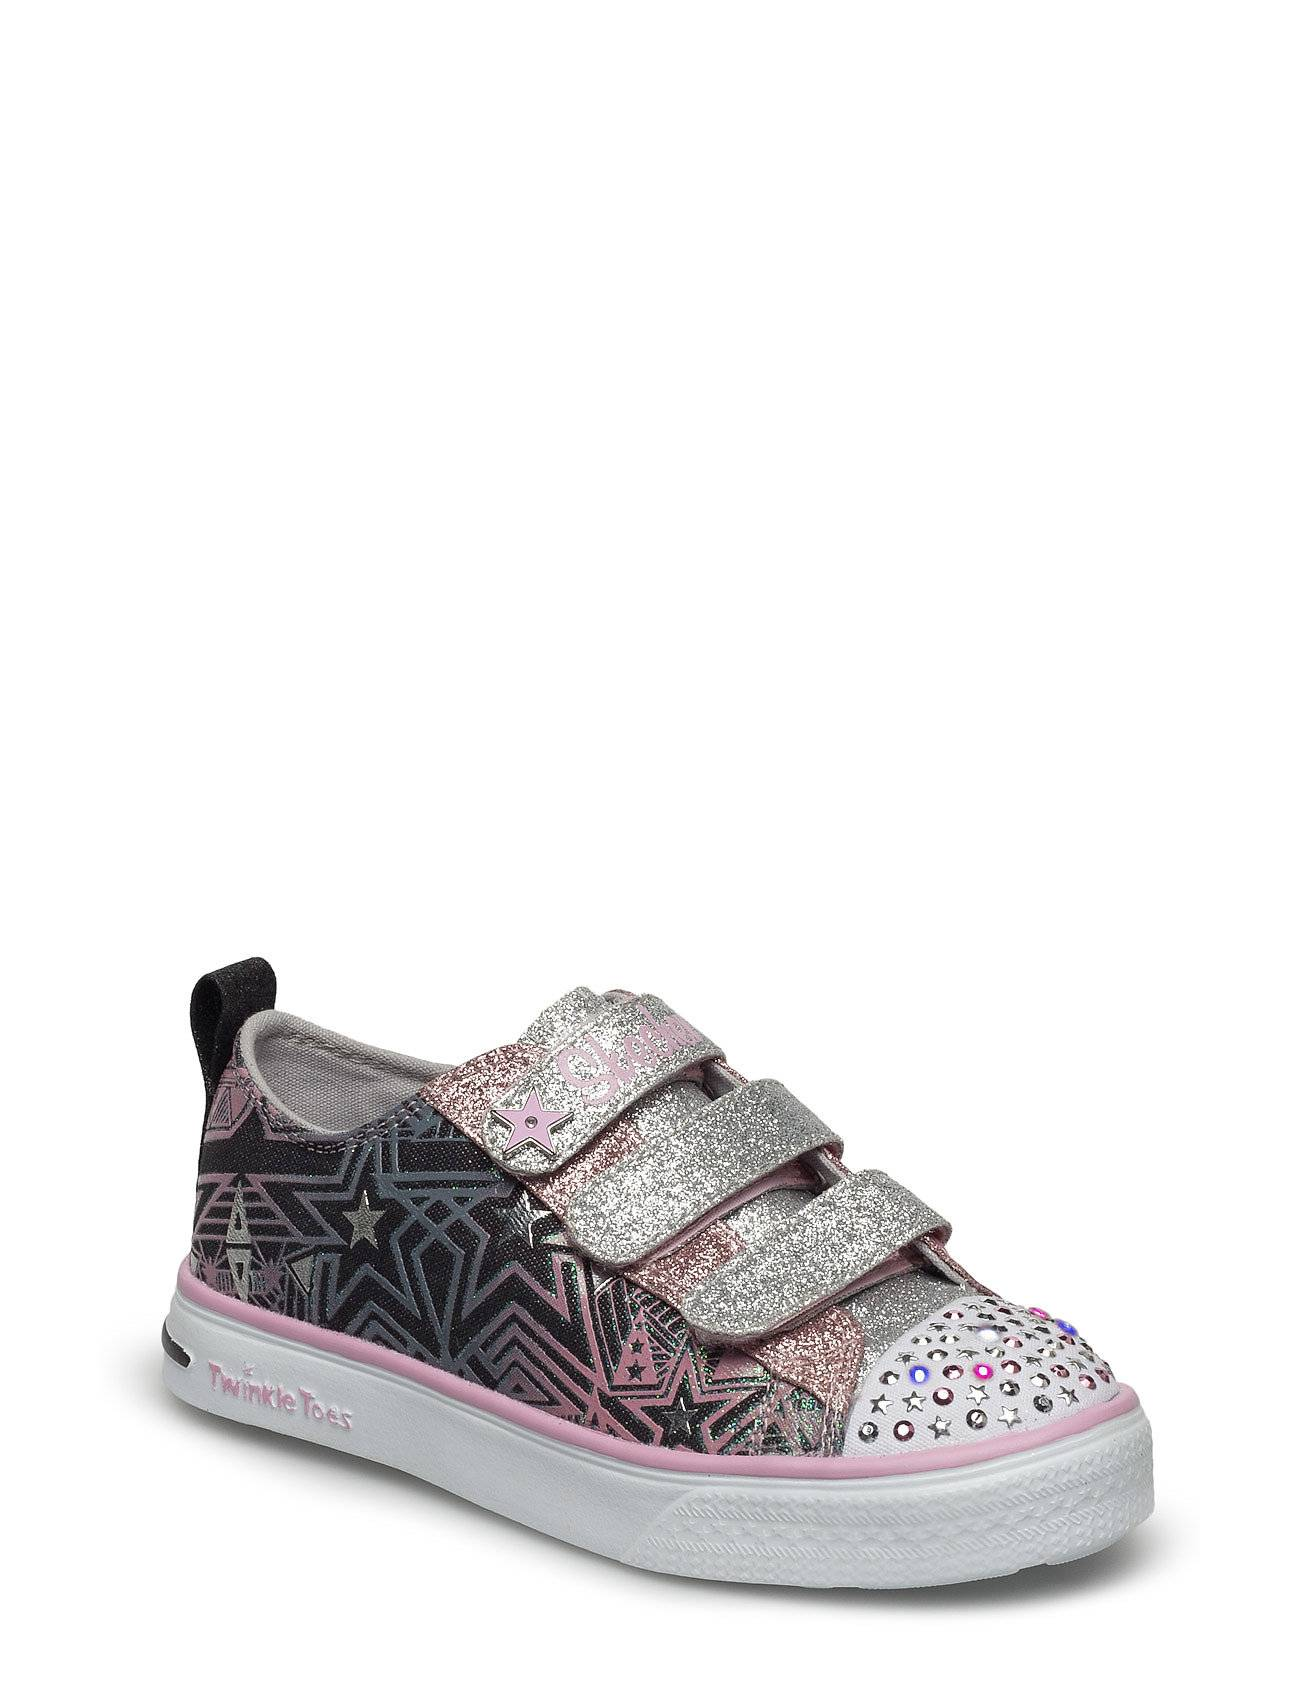 Skechers Girls Twinkle Breeze - Comet Cutie